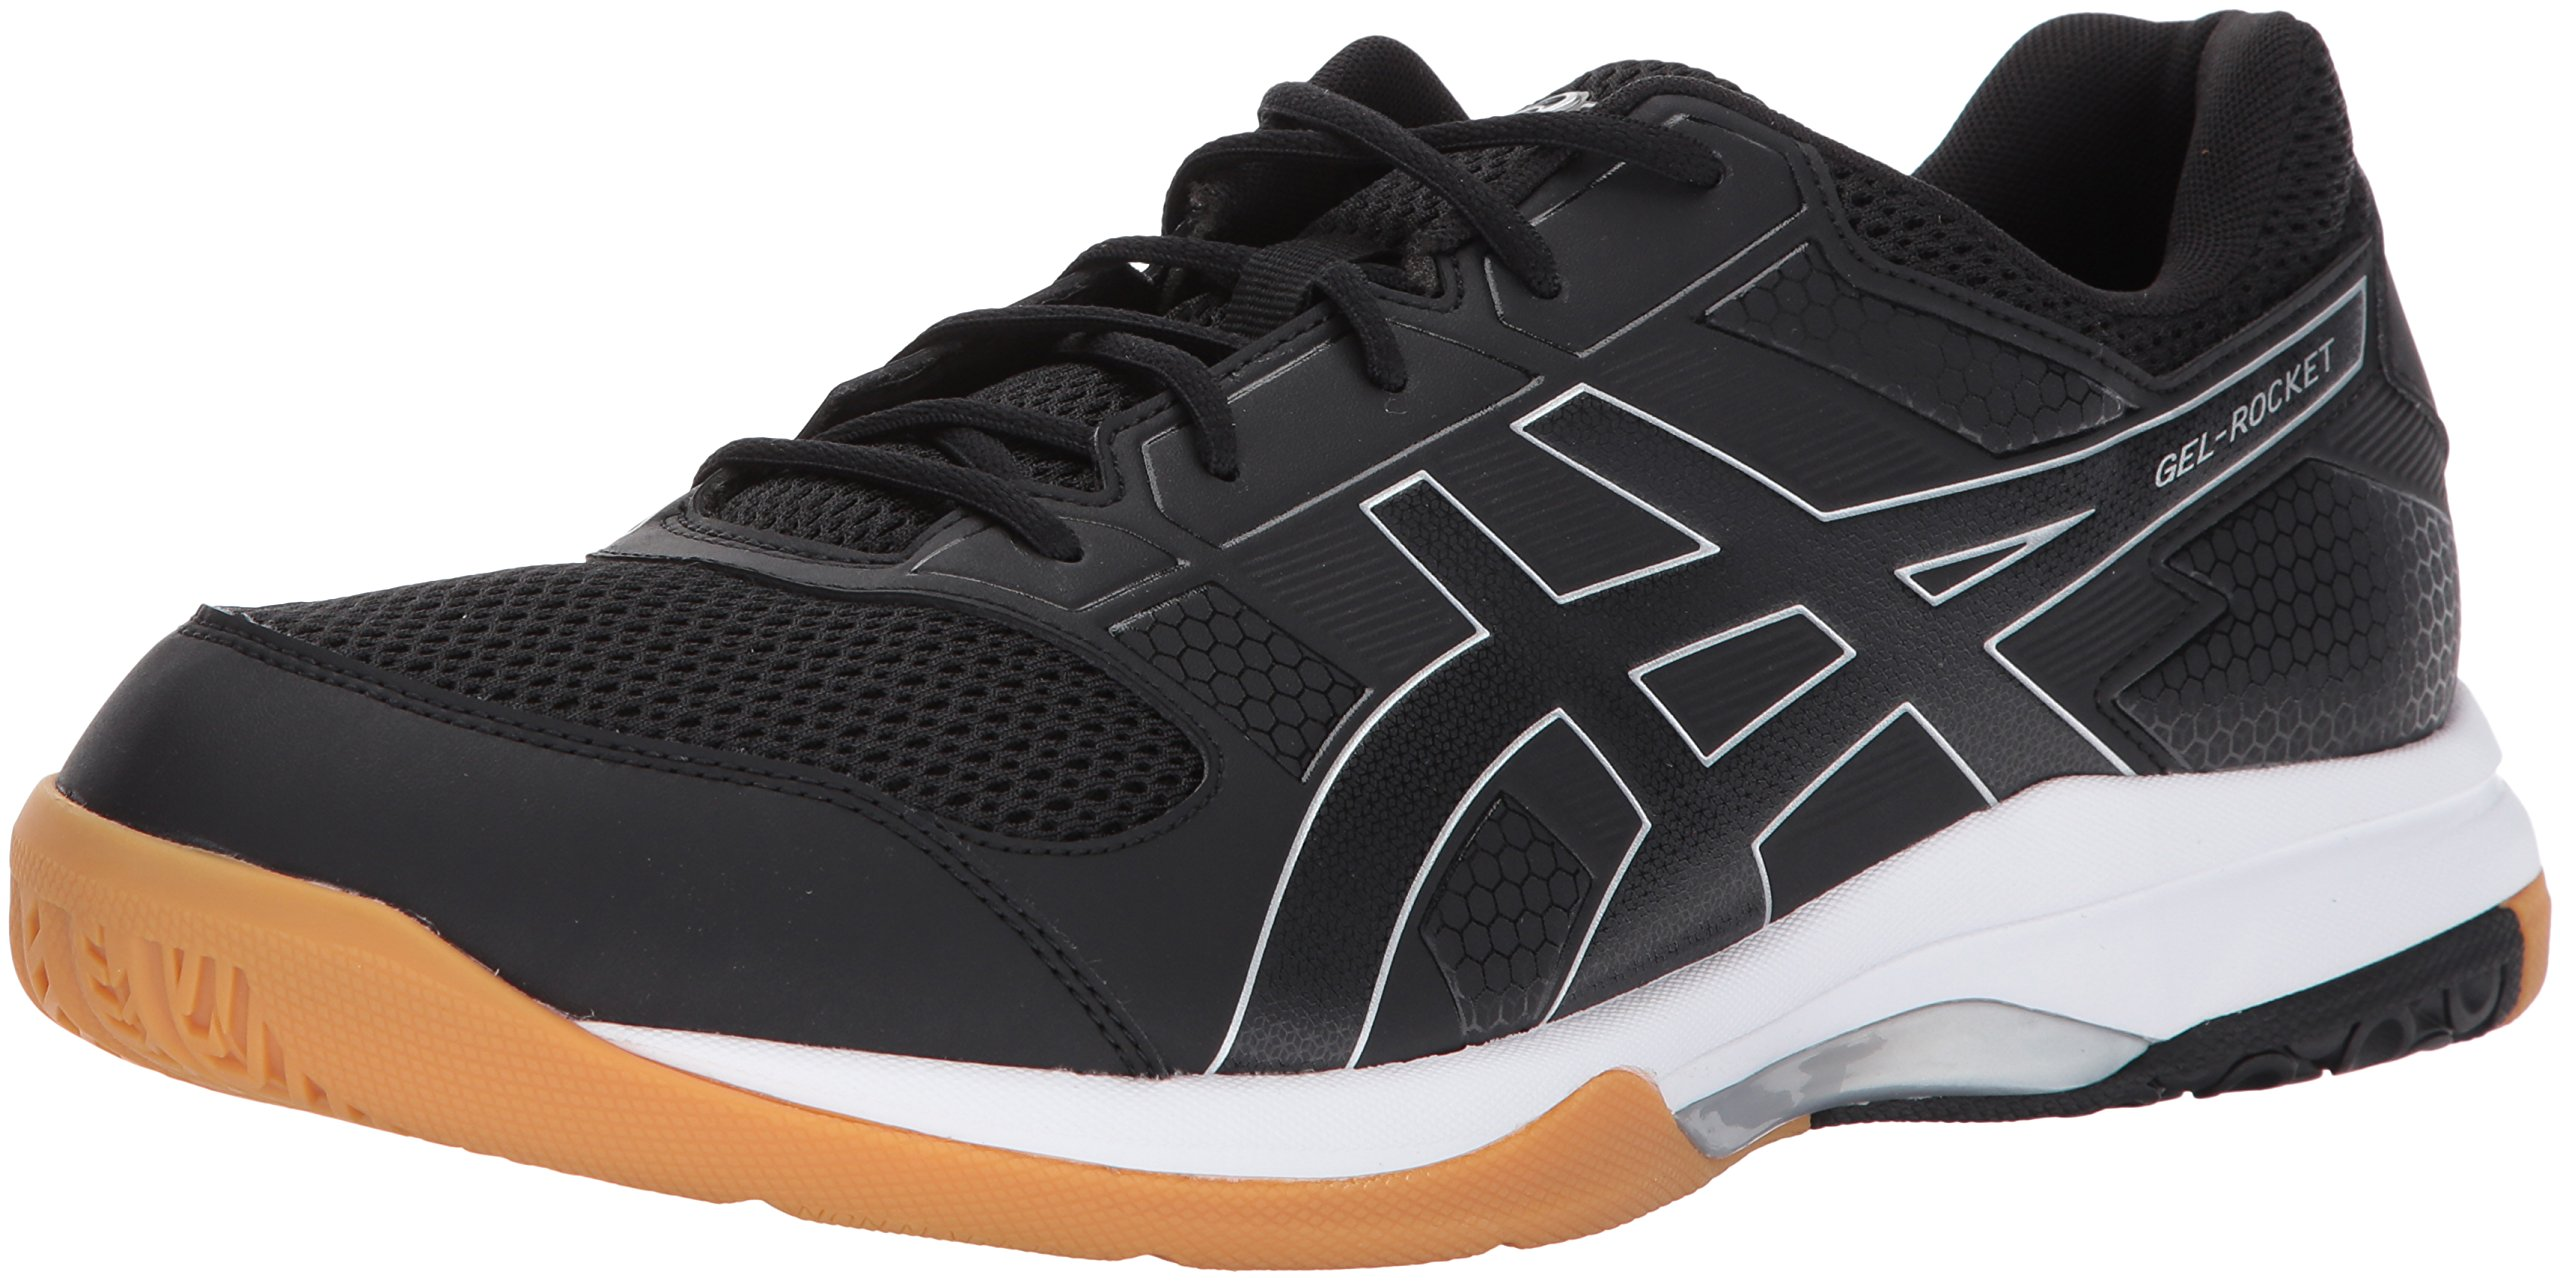 ASICS Men's Gel-Rocket 8 Volleyball Shoe, Black/Black/White, 10.5 Medium US by ASICS